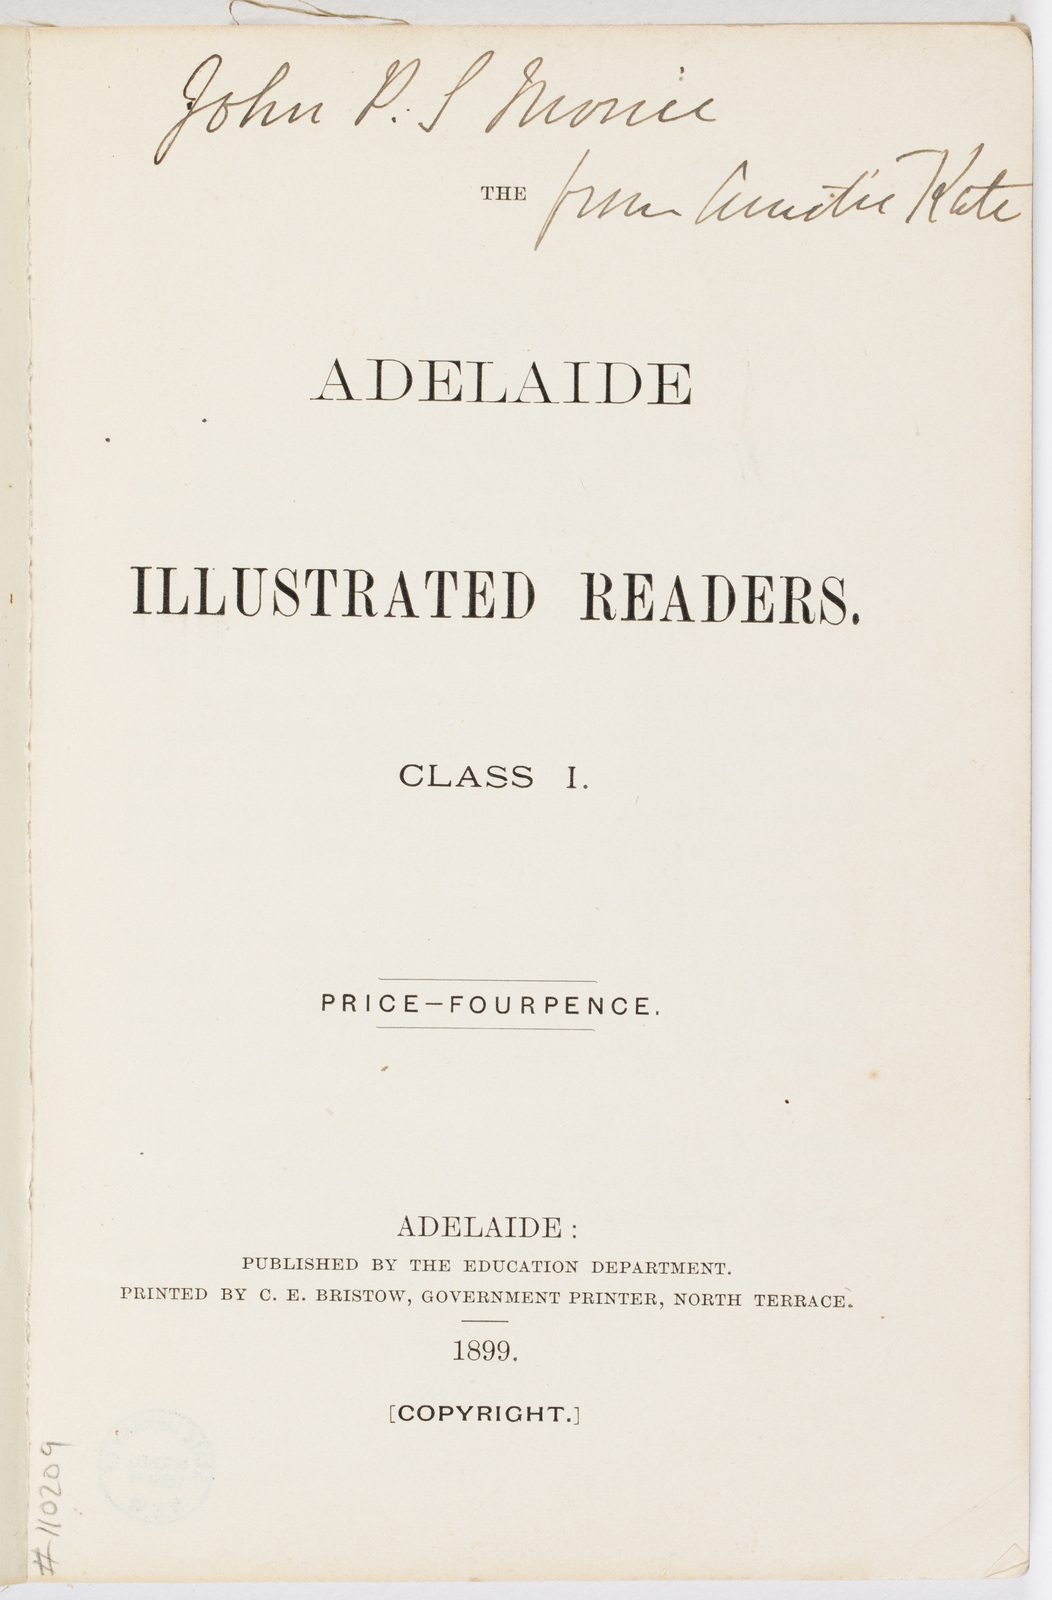 The Adelaide Illustrated Readers